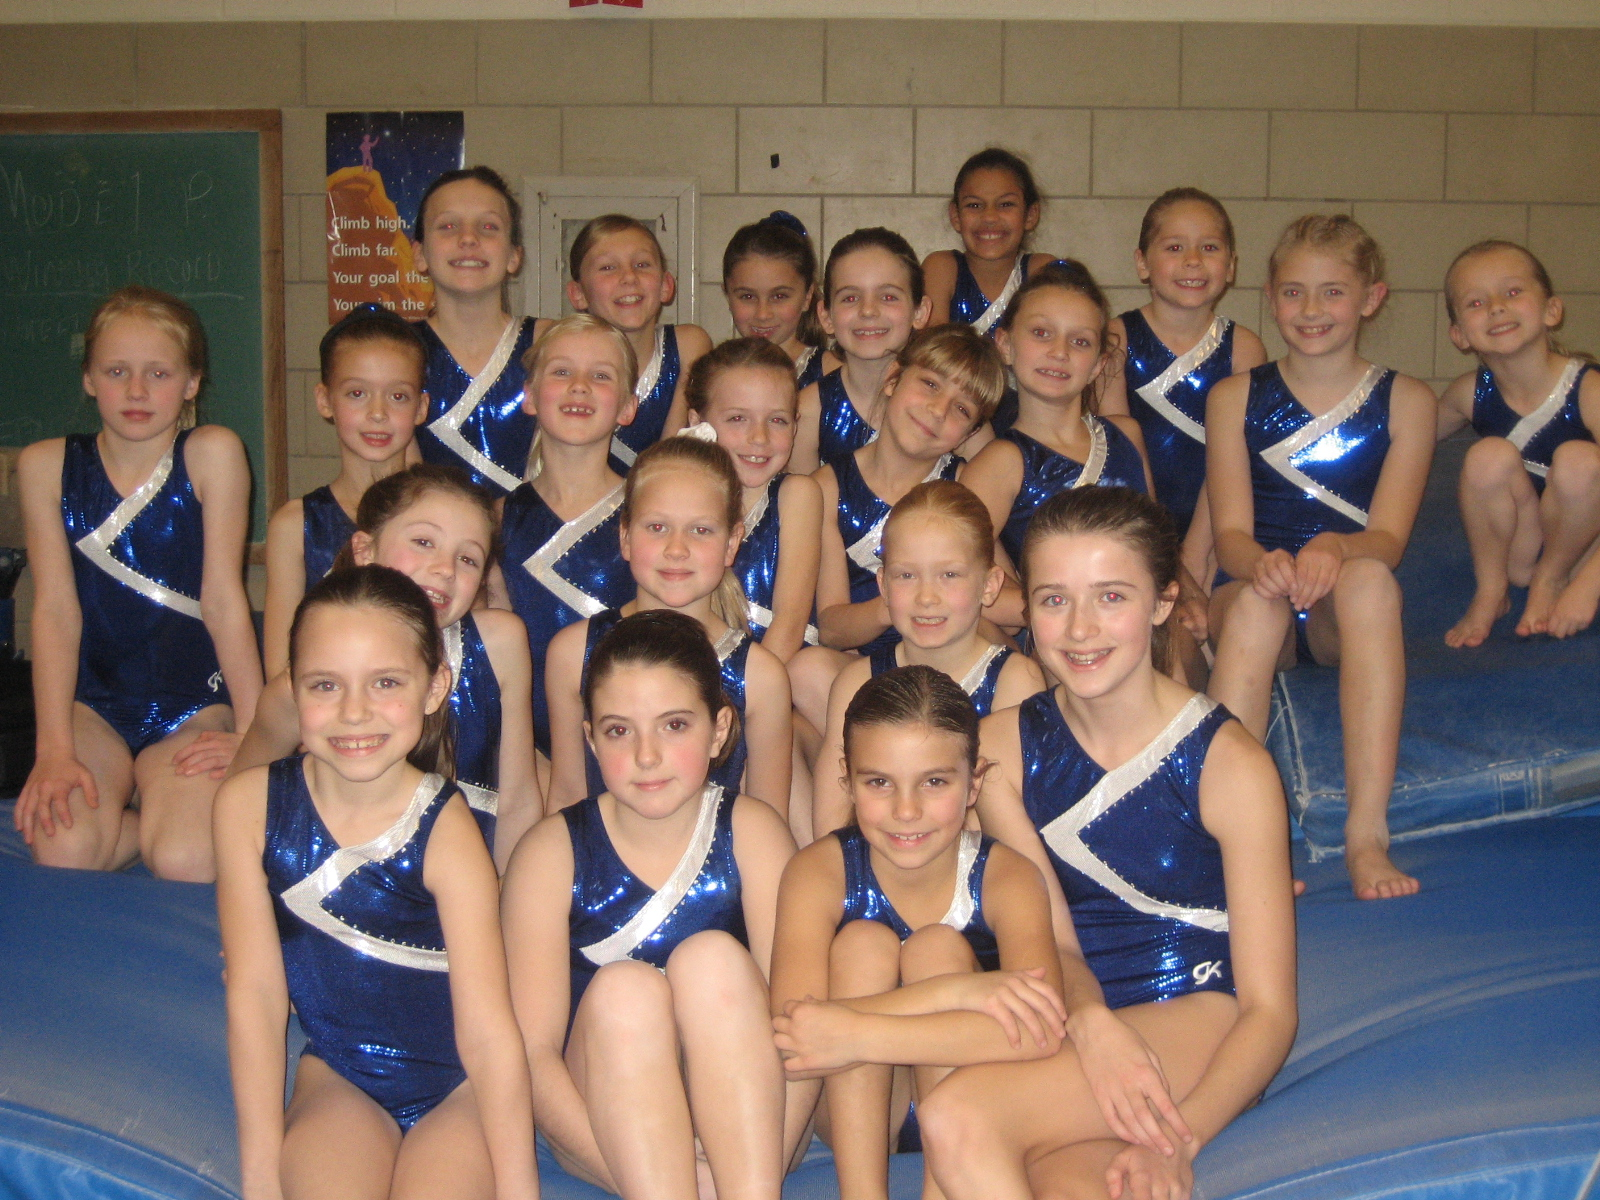 Girls+gymnastics+team